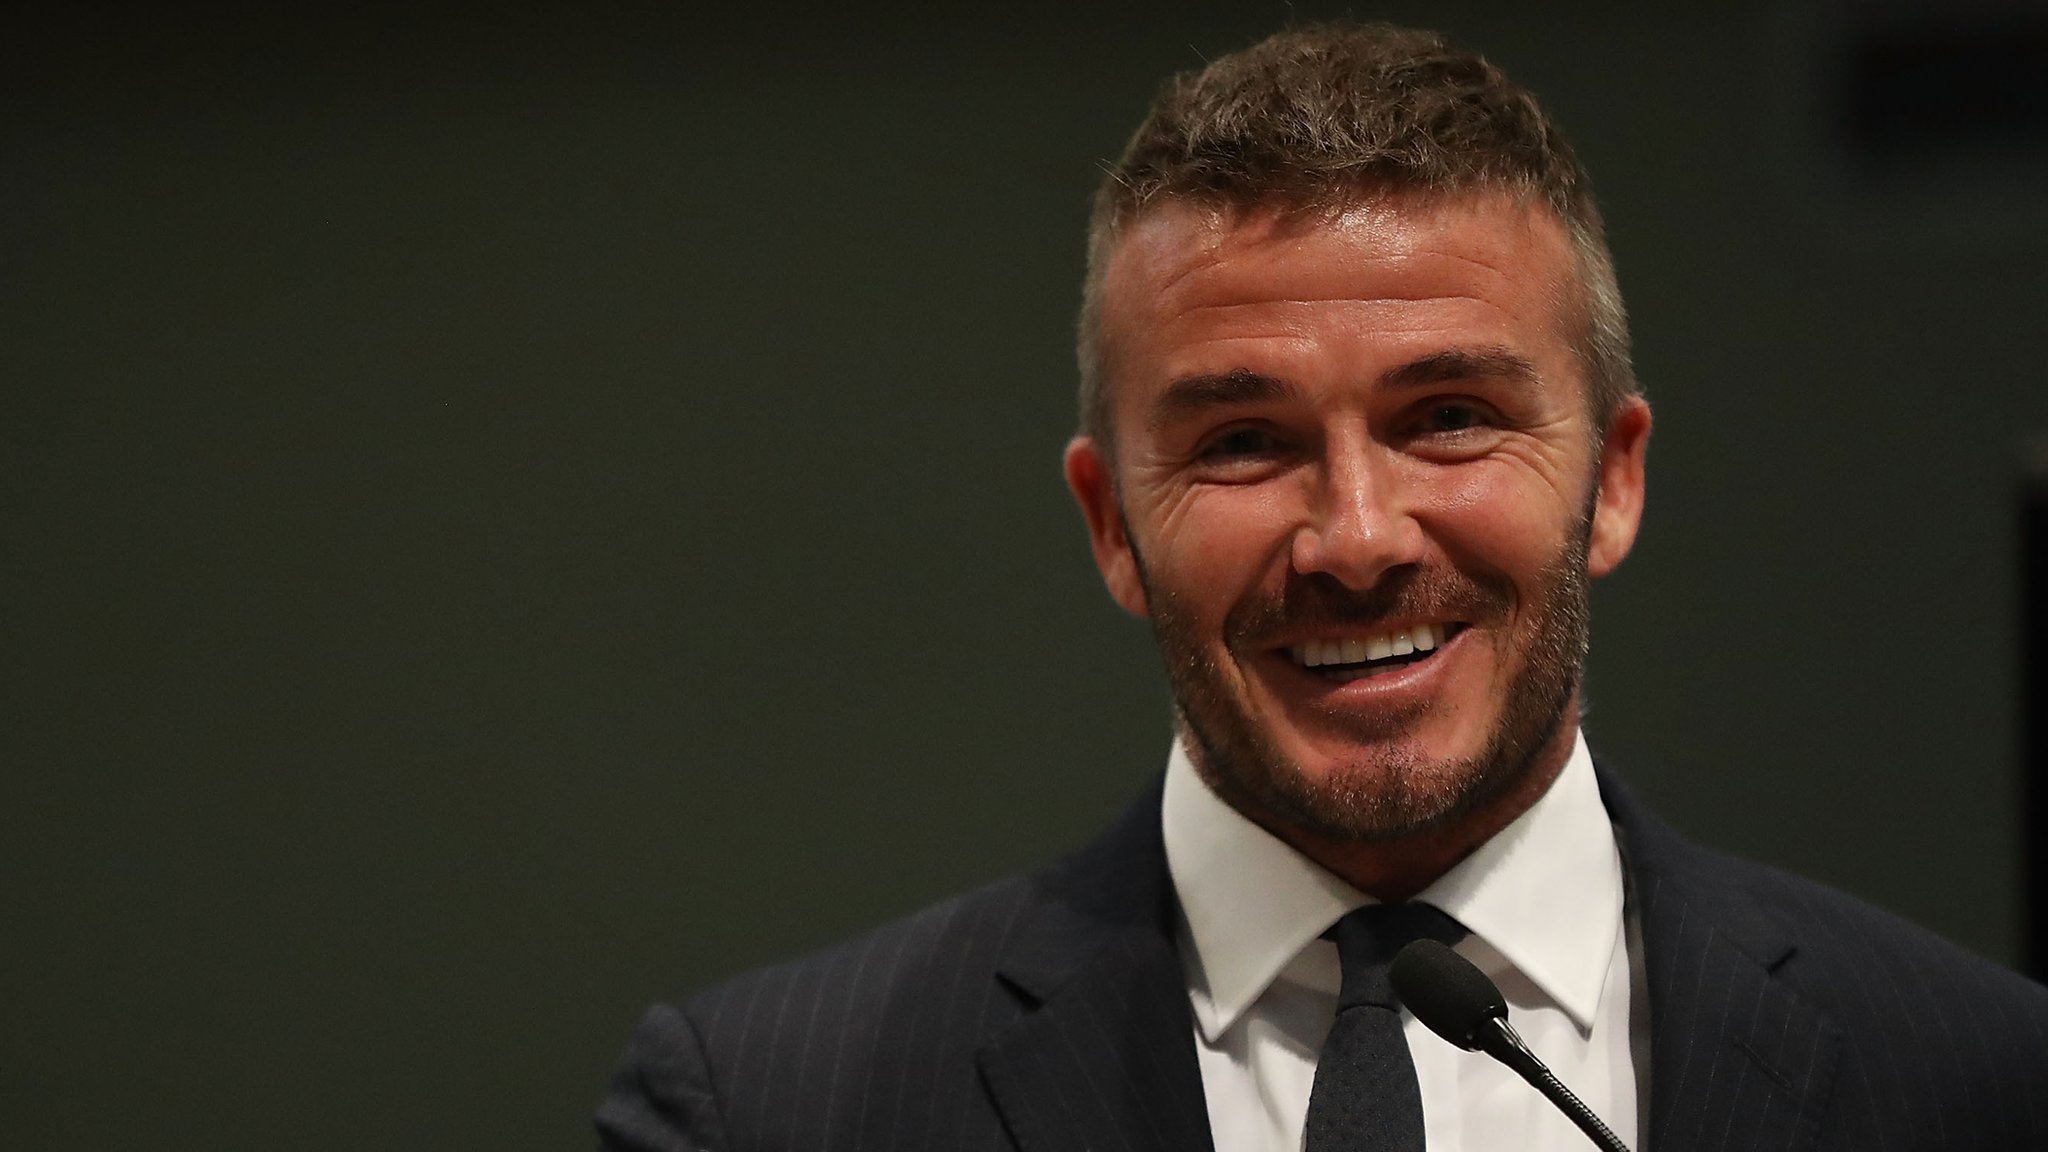 David Beckham to become shareholder of National League club Salford